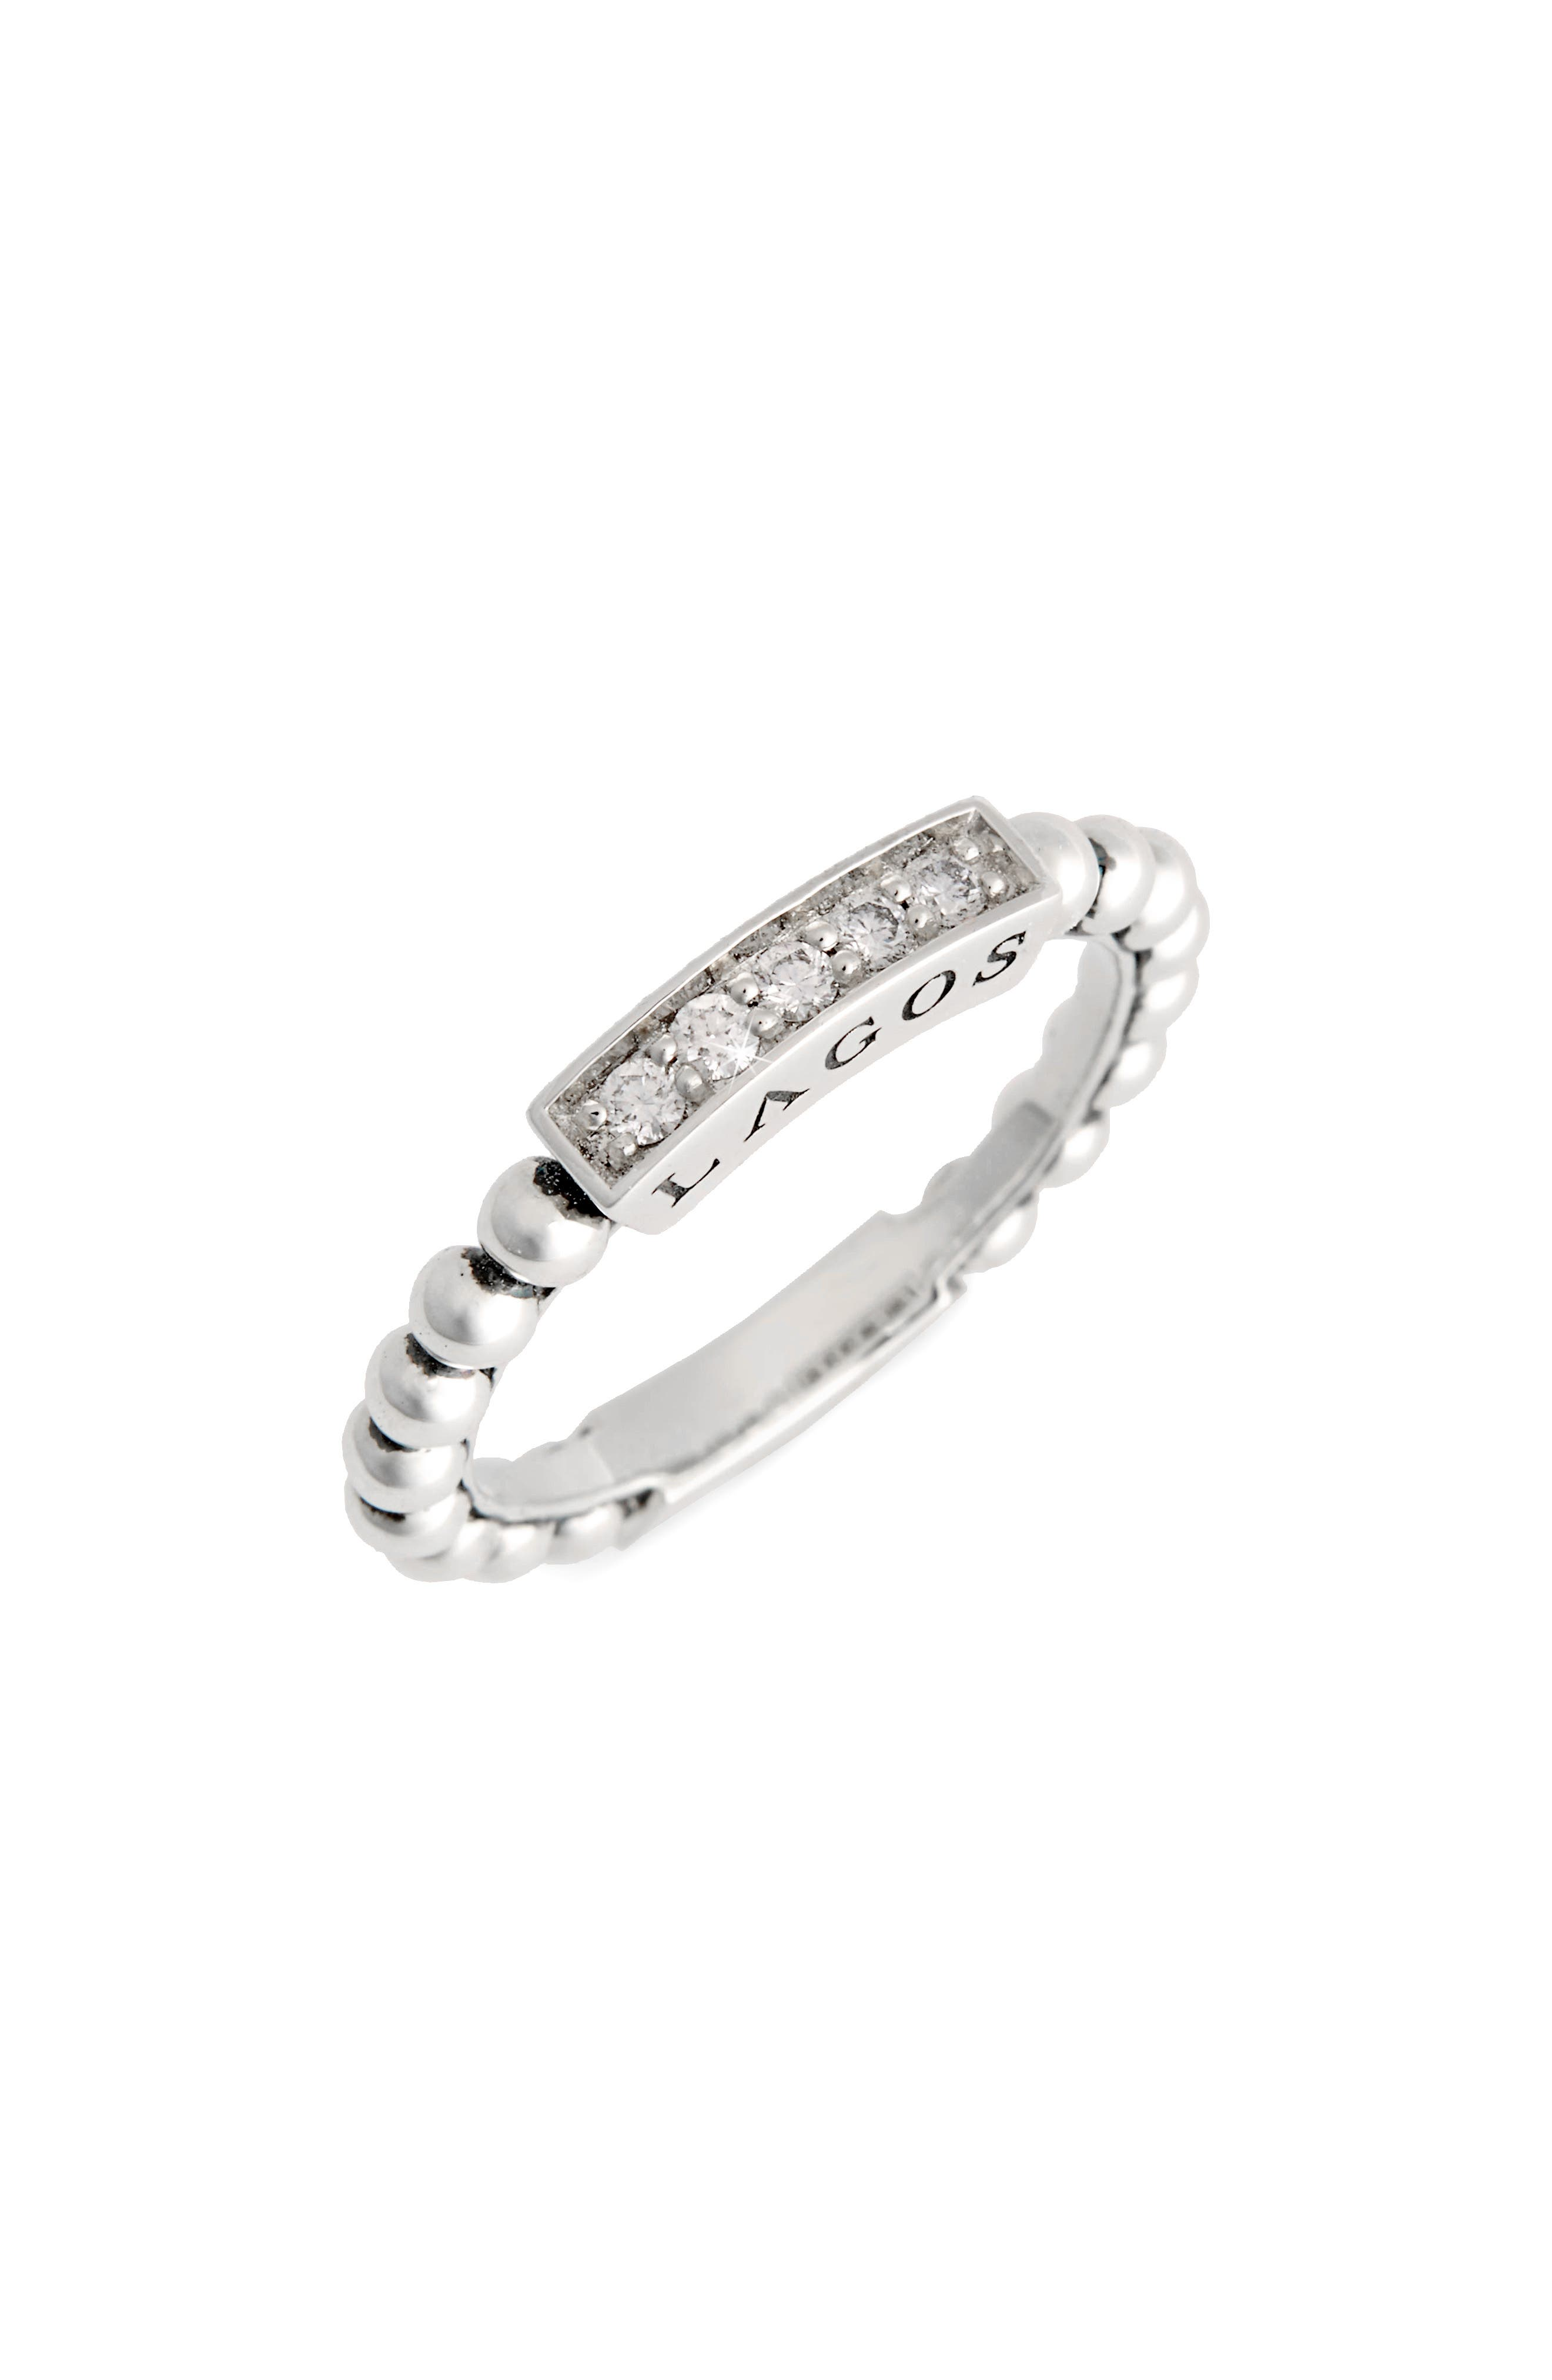 Caviar Icon Spark Diamond Stacking Ring,                             Main thumbnail 1, color,                             Silver/ Diamond